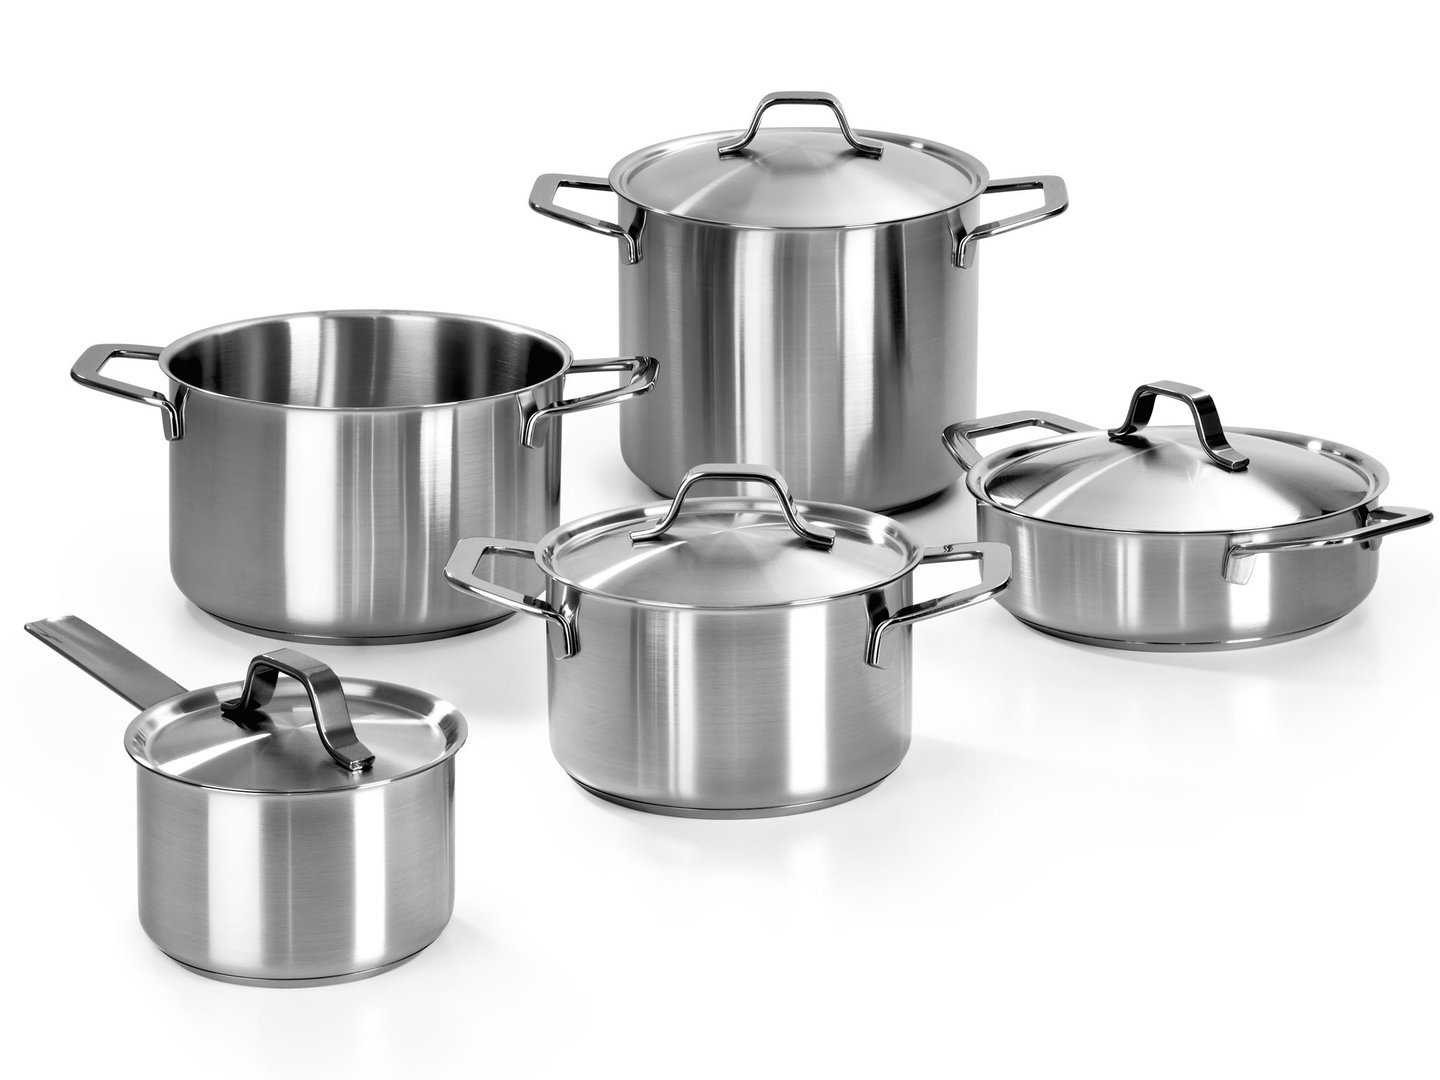 BARAZZONI stainless steel cookware set SATINÈ 9 pieces